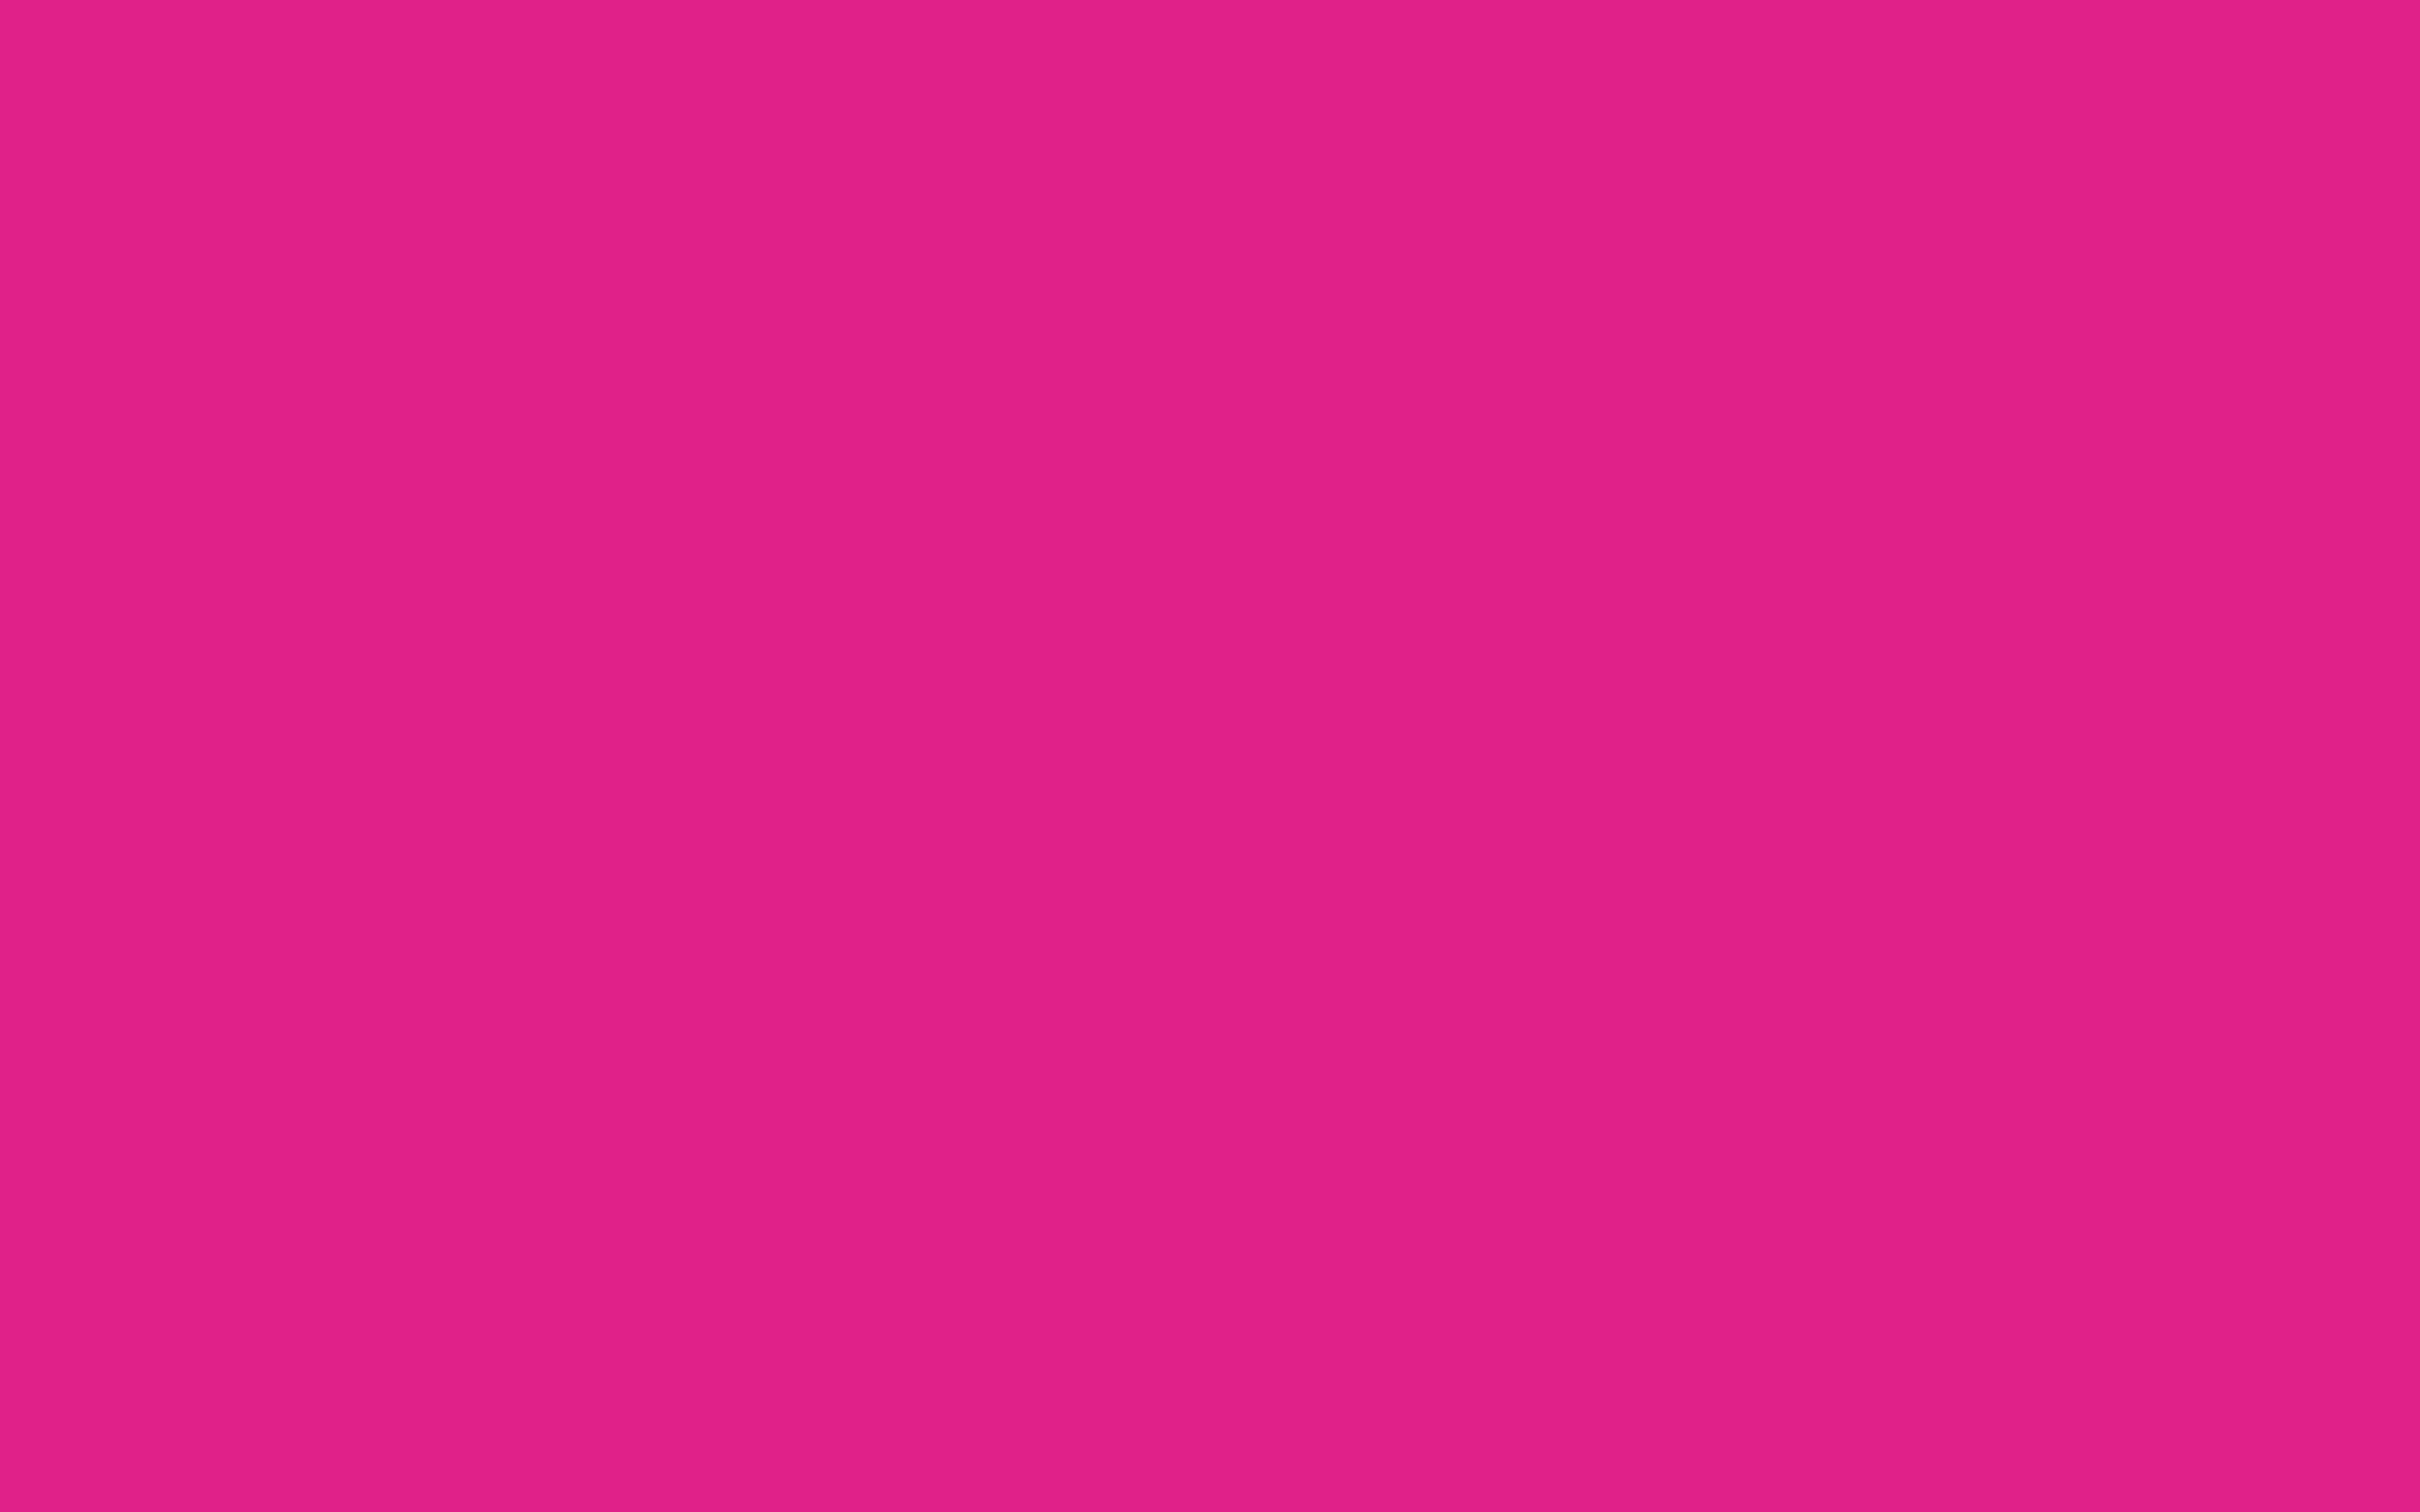 Pink Color Pink Wallpaper 68 Images